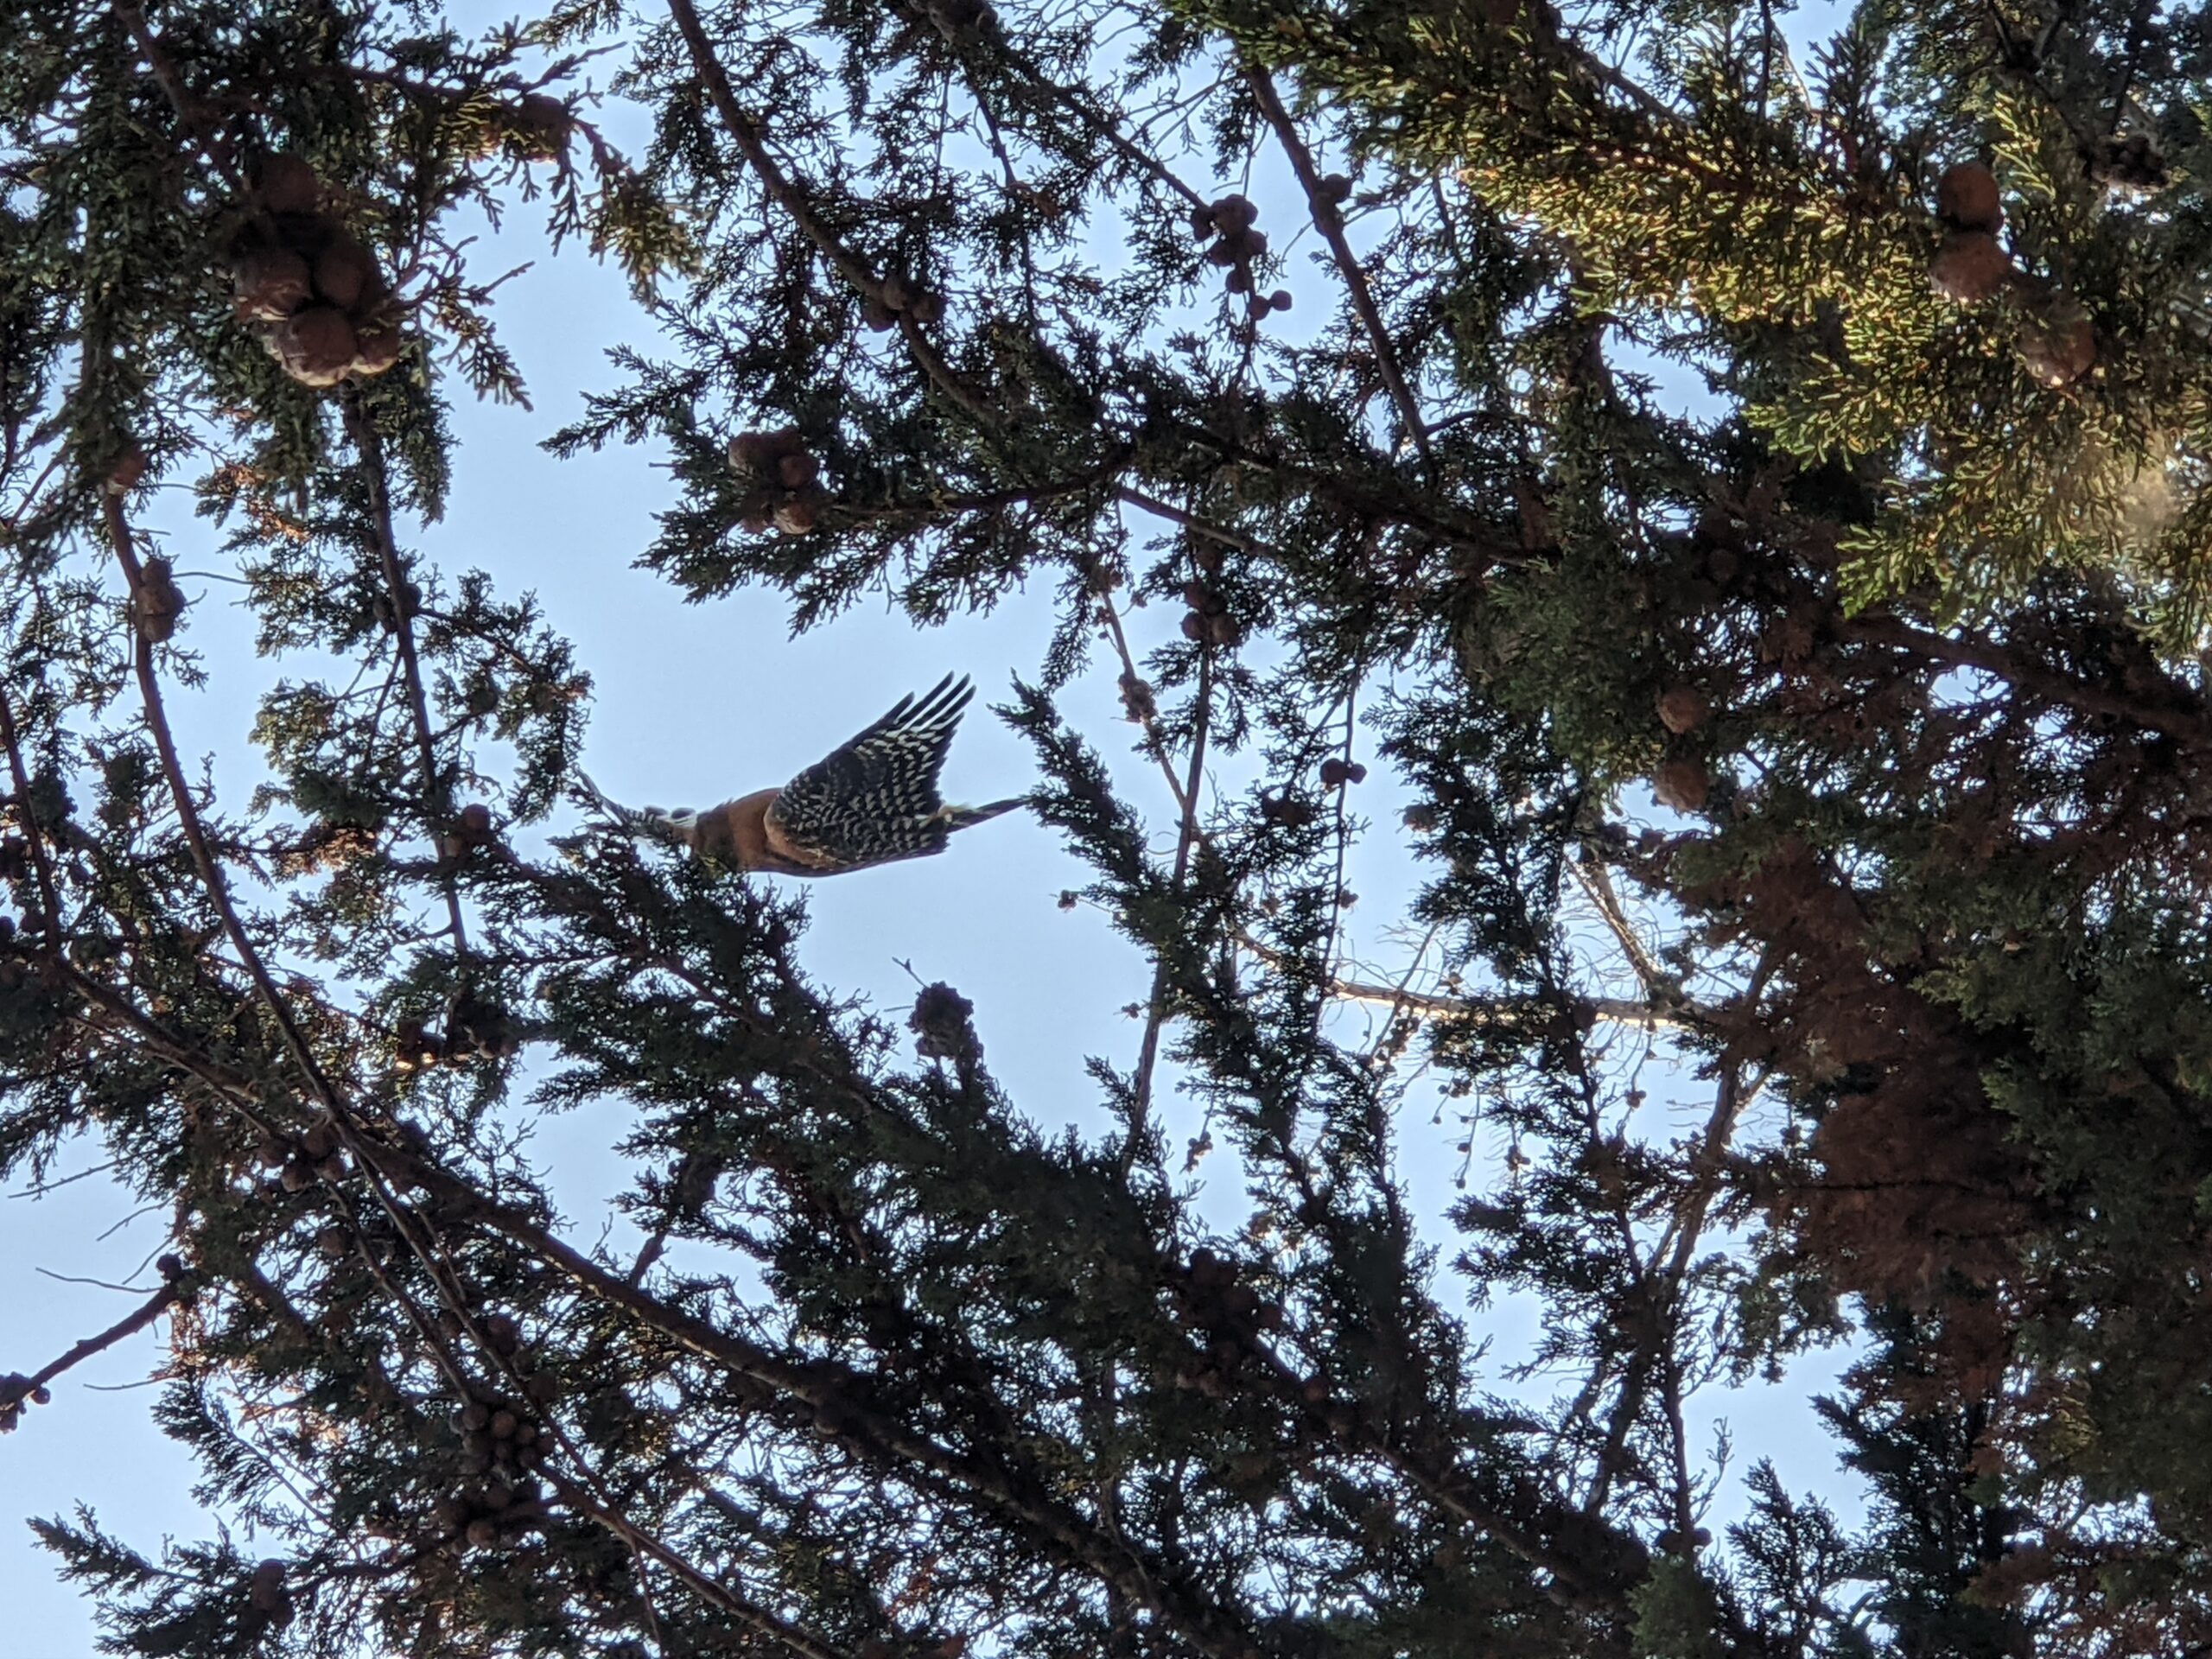 Red Shouldered Hawk was found entangled in fishing line and hanging from her wing between two tall trees above a walking path in Salinas.